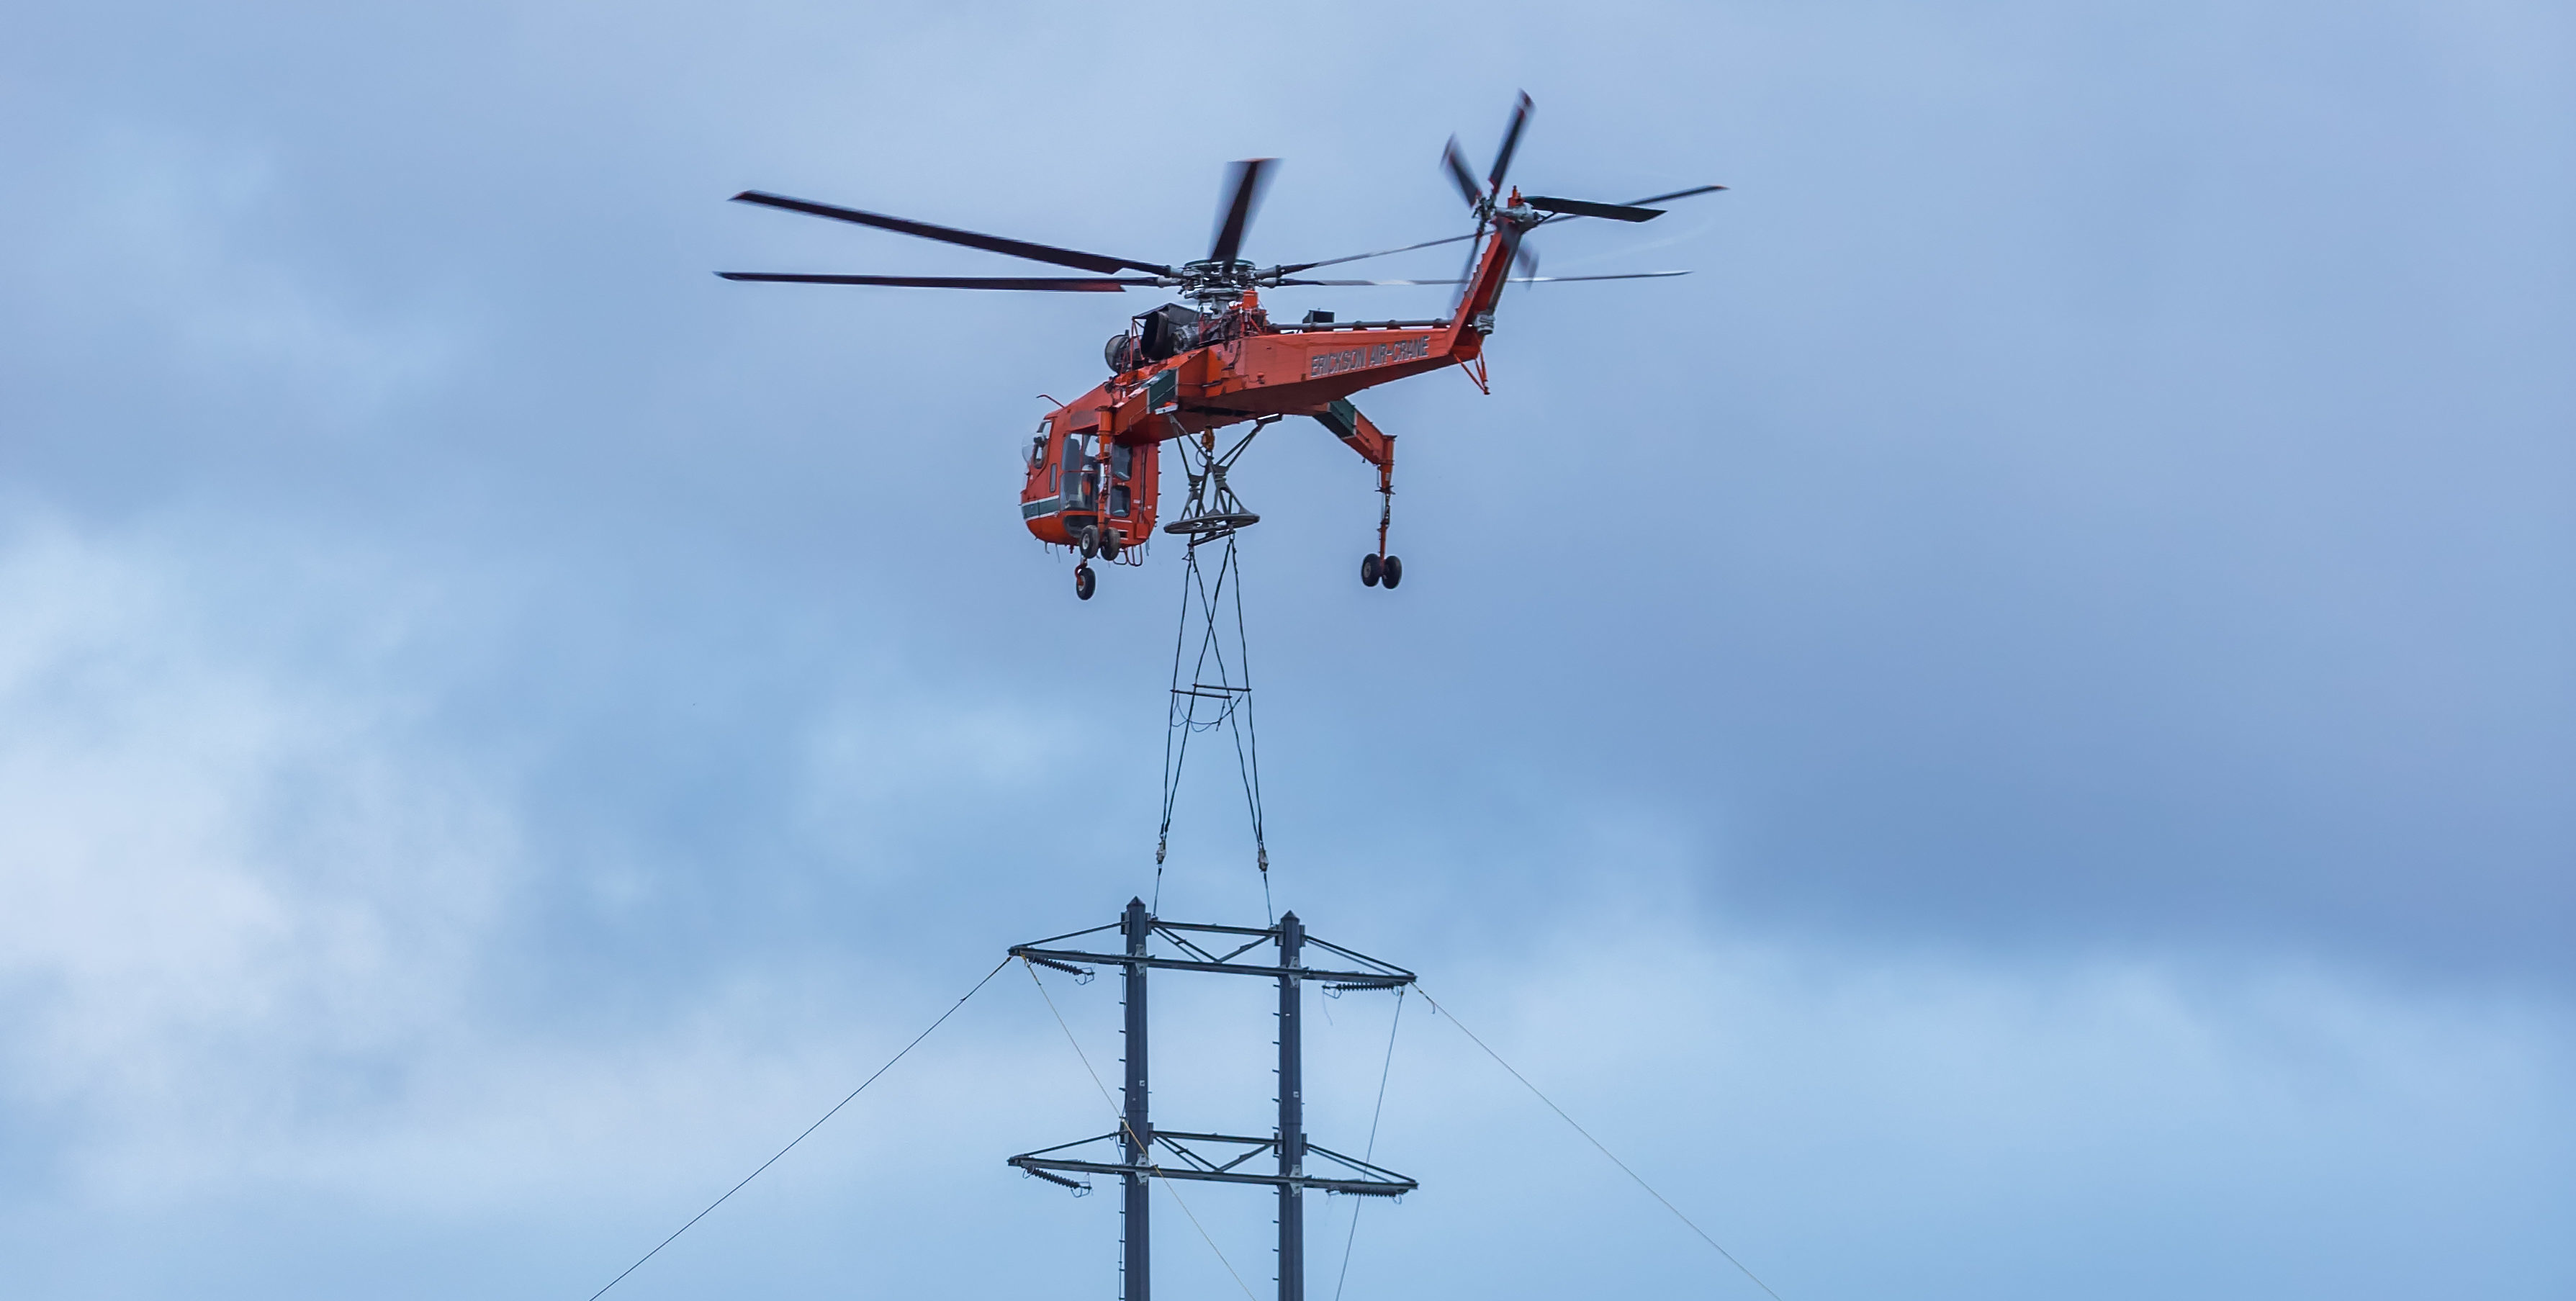 This is the Erickson Air Crane Helicopter lifting an Electricity Pylon from the Bafor and Beatty Storage Yard near Keith, Moray to set in place for the new Electricity Line. Photographed on 2 February 2018 by Brian Smith, Jasperimage, Tel 07917 848 732